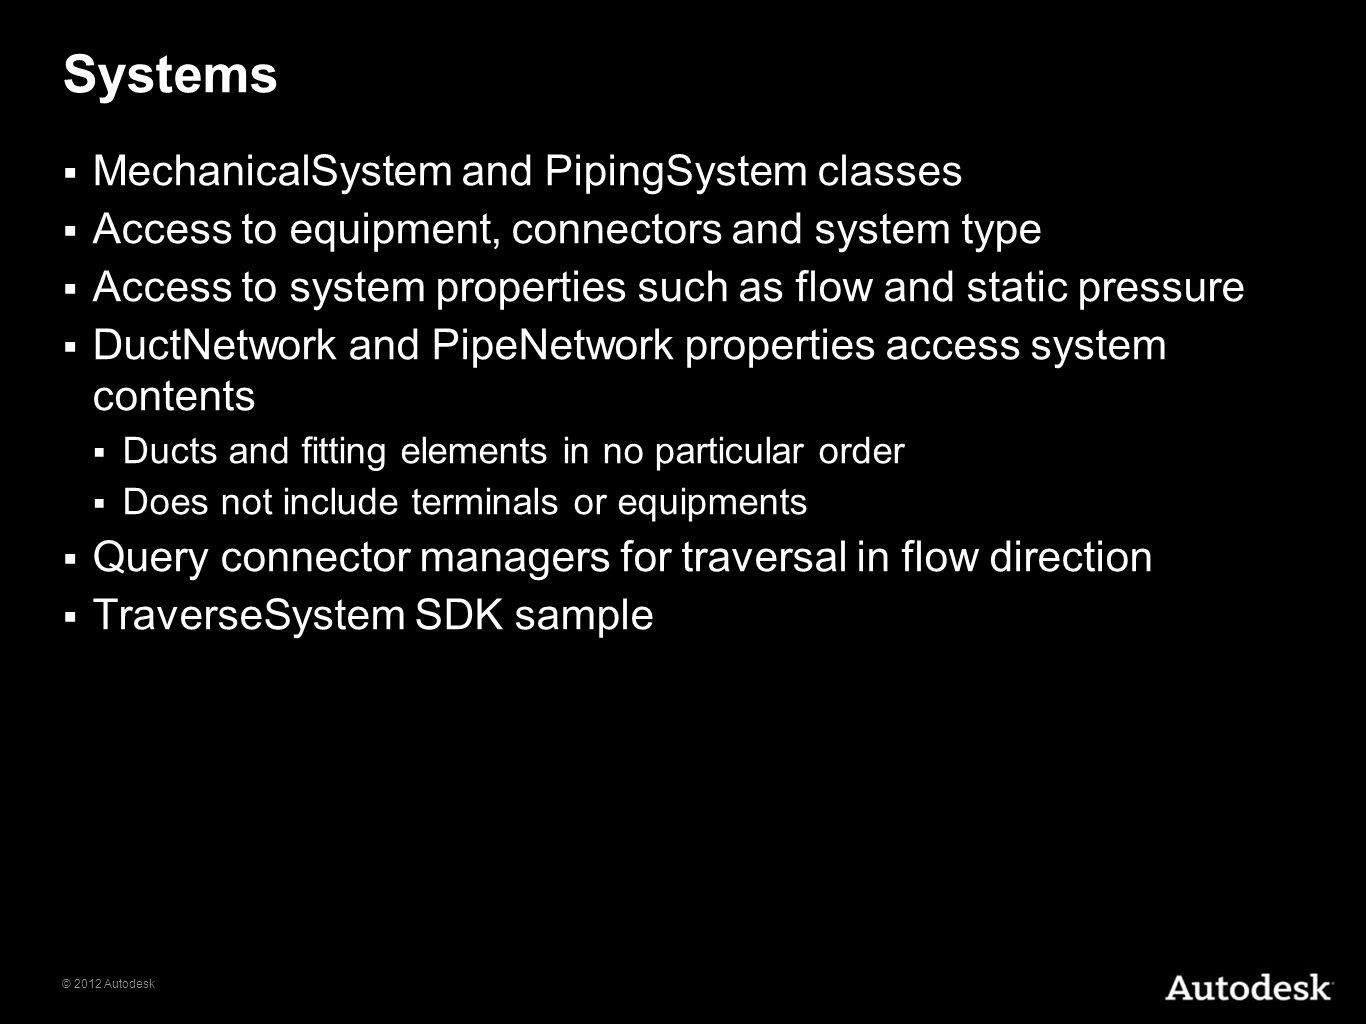 Systems MechanicalSystem and PipingSystem classes